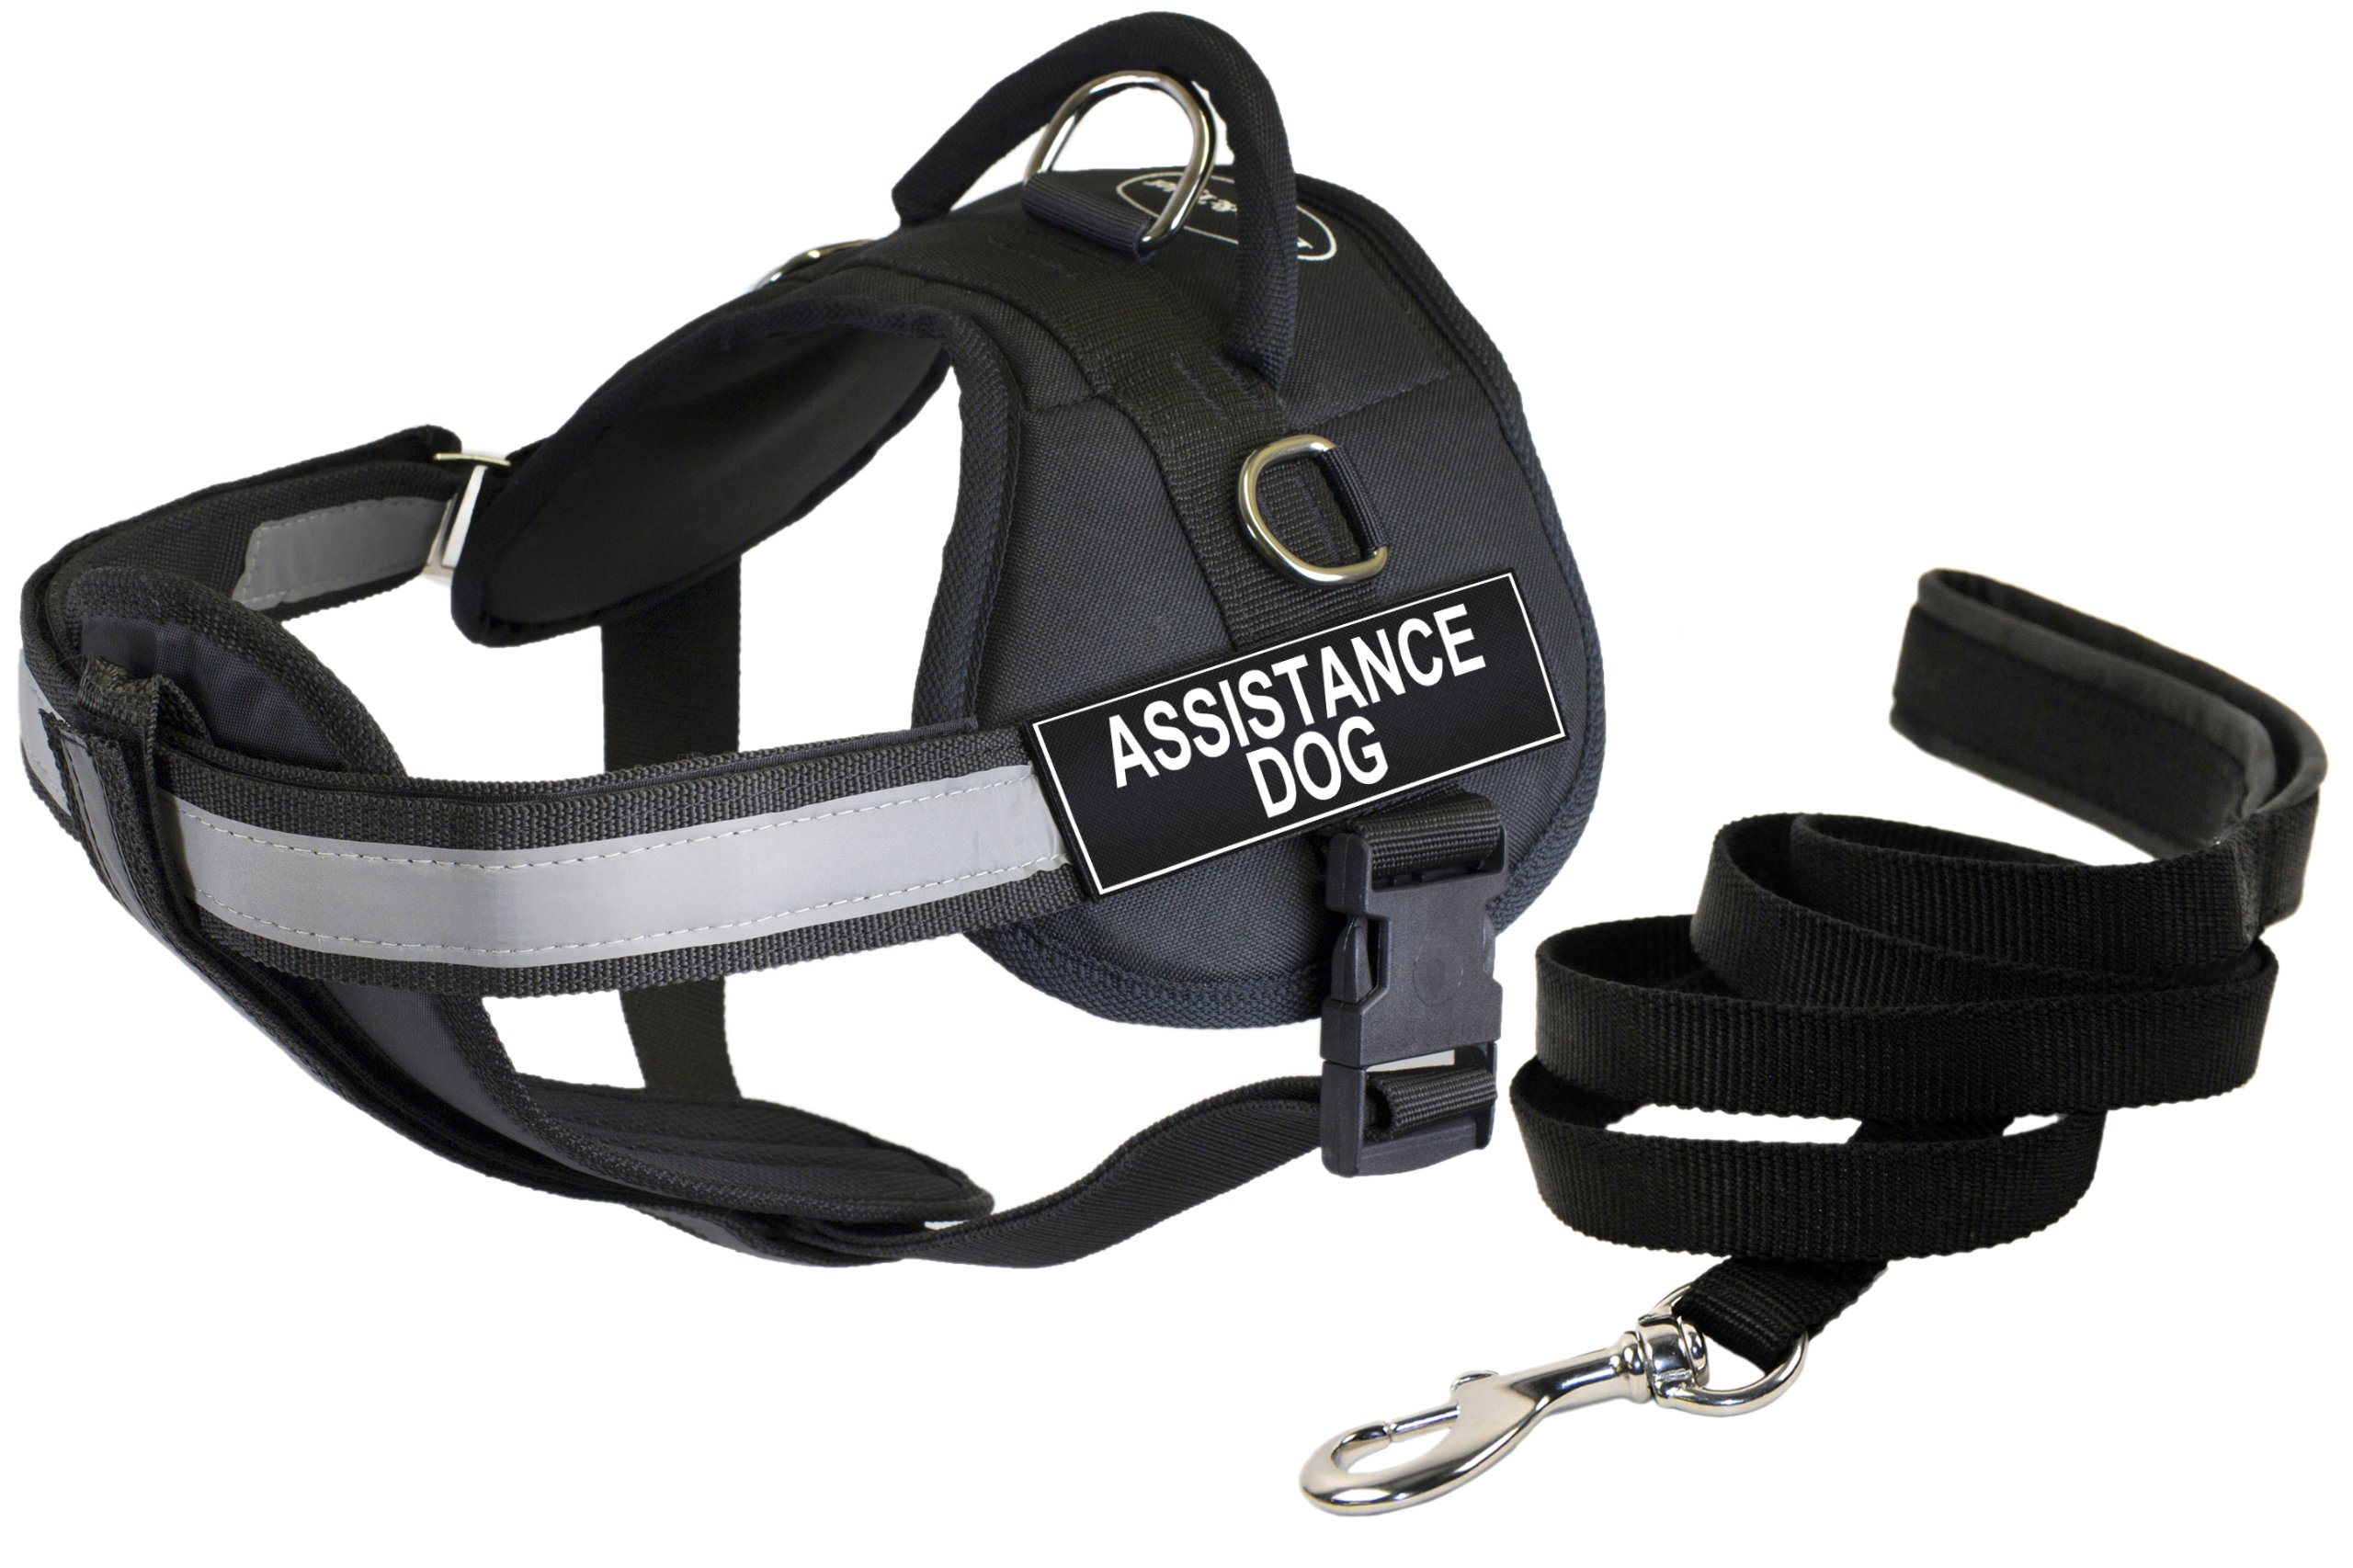 Dean and Tyler Bundle - DT Works Harness w/ Padded Chest, Assistance Dog, Medium (28''-38'') + Padded Puppy Leash, 6 FT Stainless Steel Snap - Black by Dean & Tyler (Image #1)